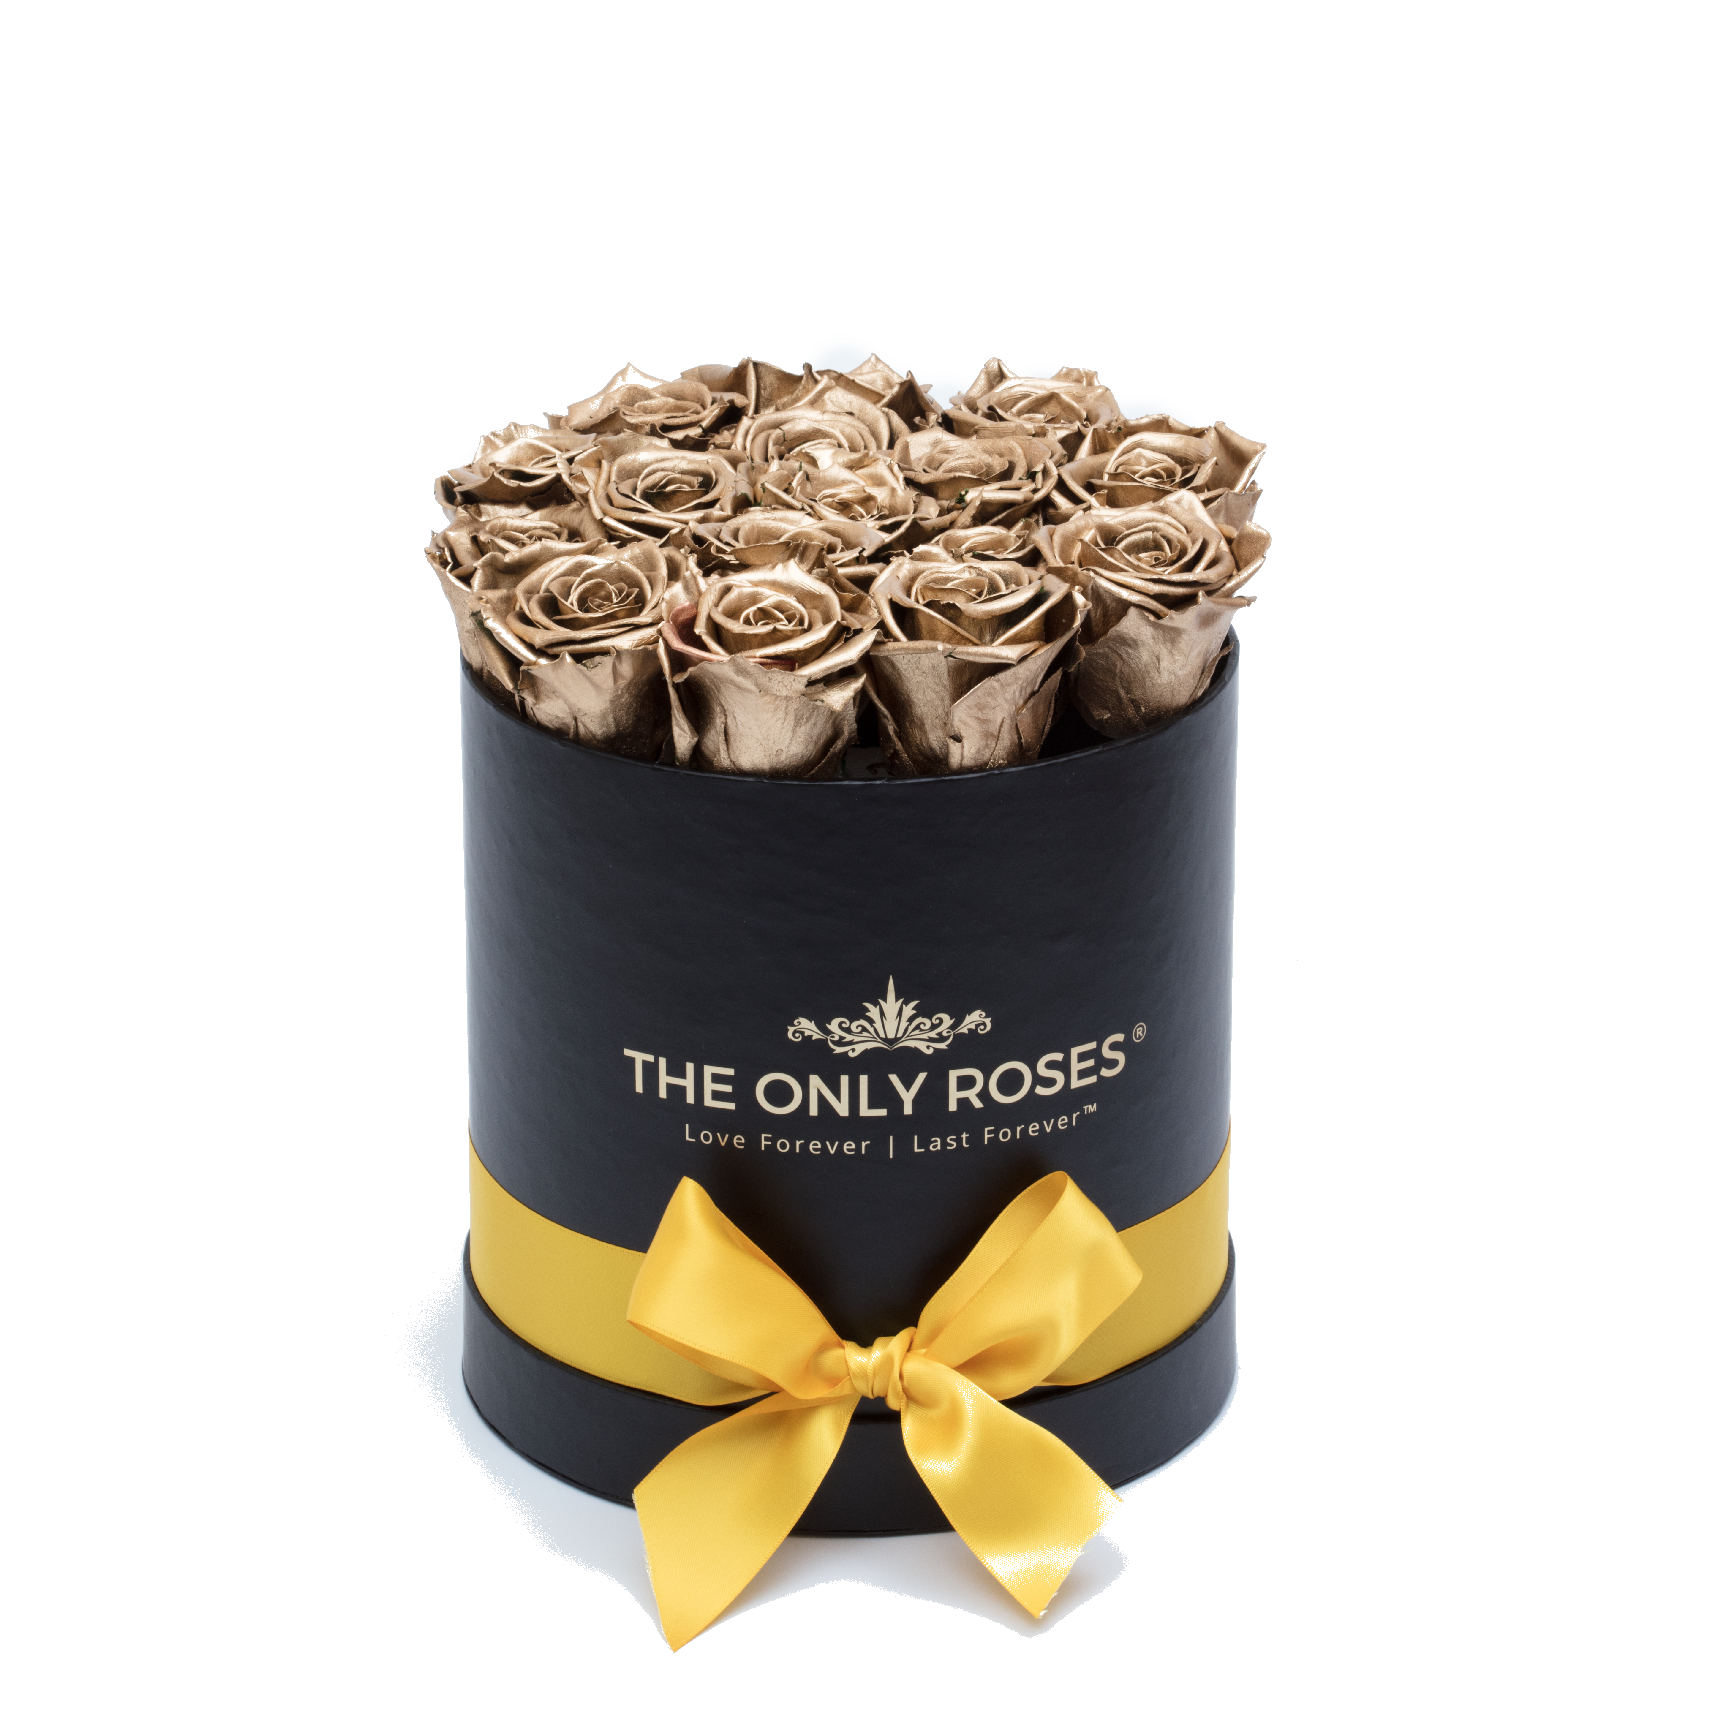 Rose Last One Year Gold Preserved Roses Small Round